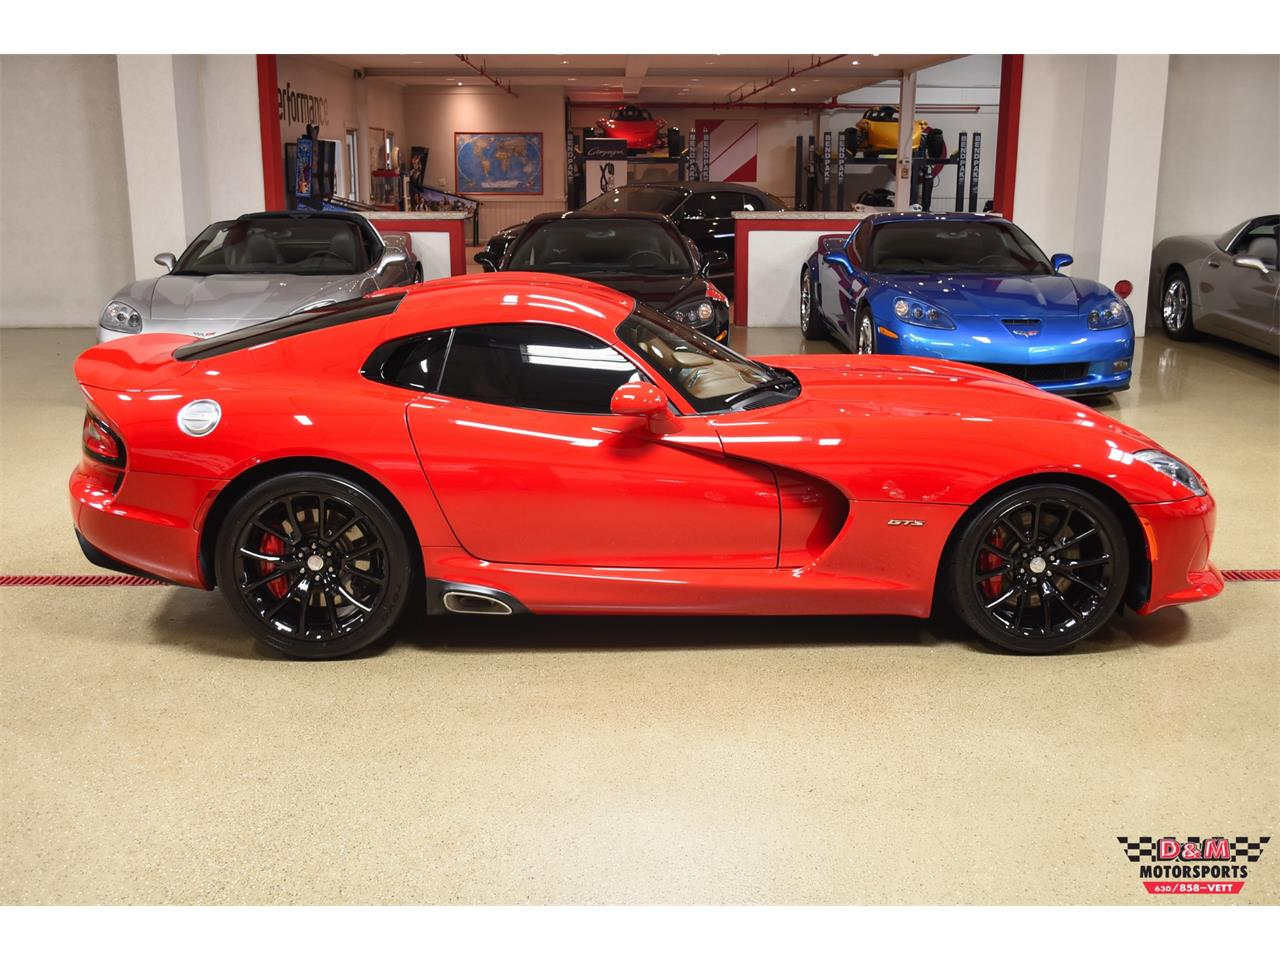 Large Picture of '13 Viper located in Illinois Offered by D & M Motorsports - PTPC